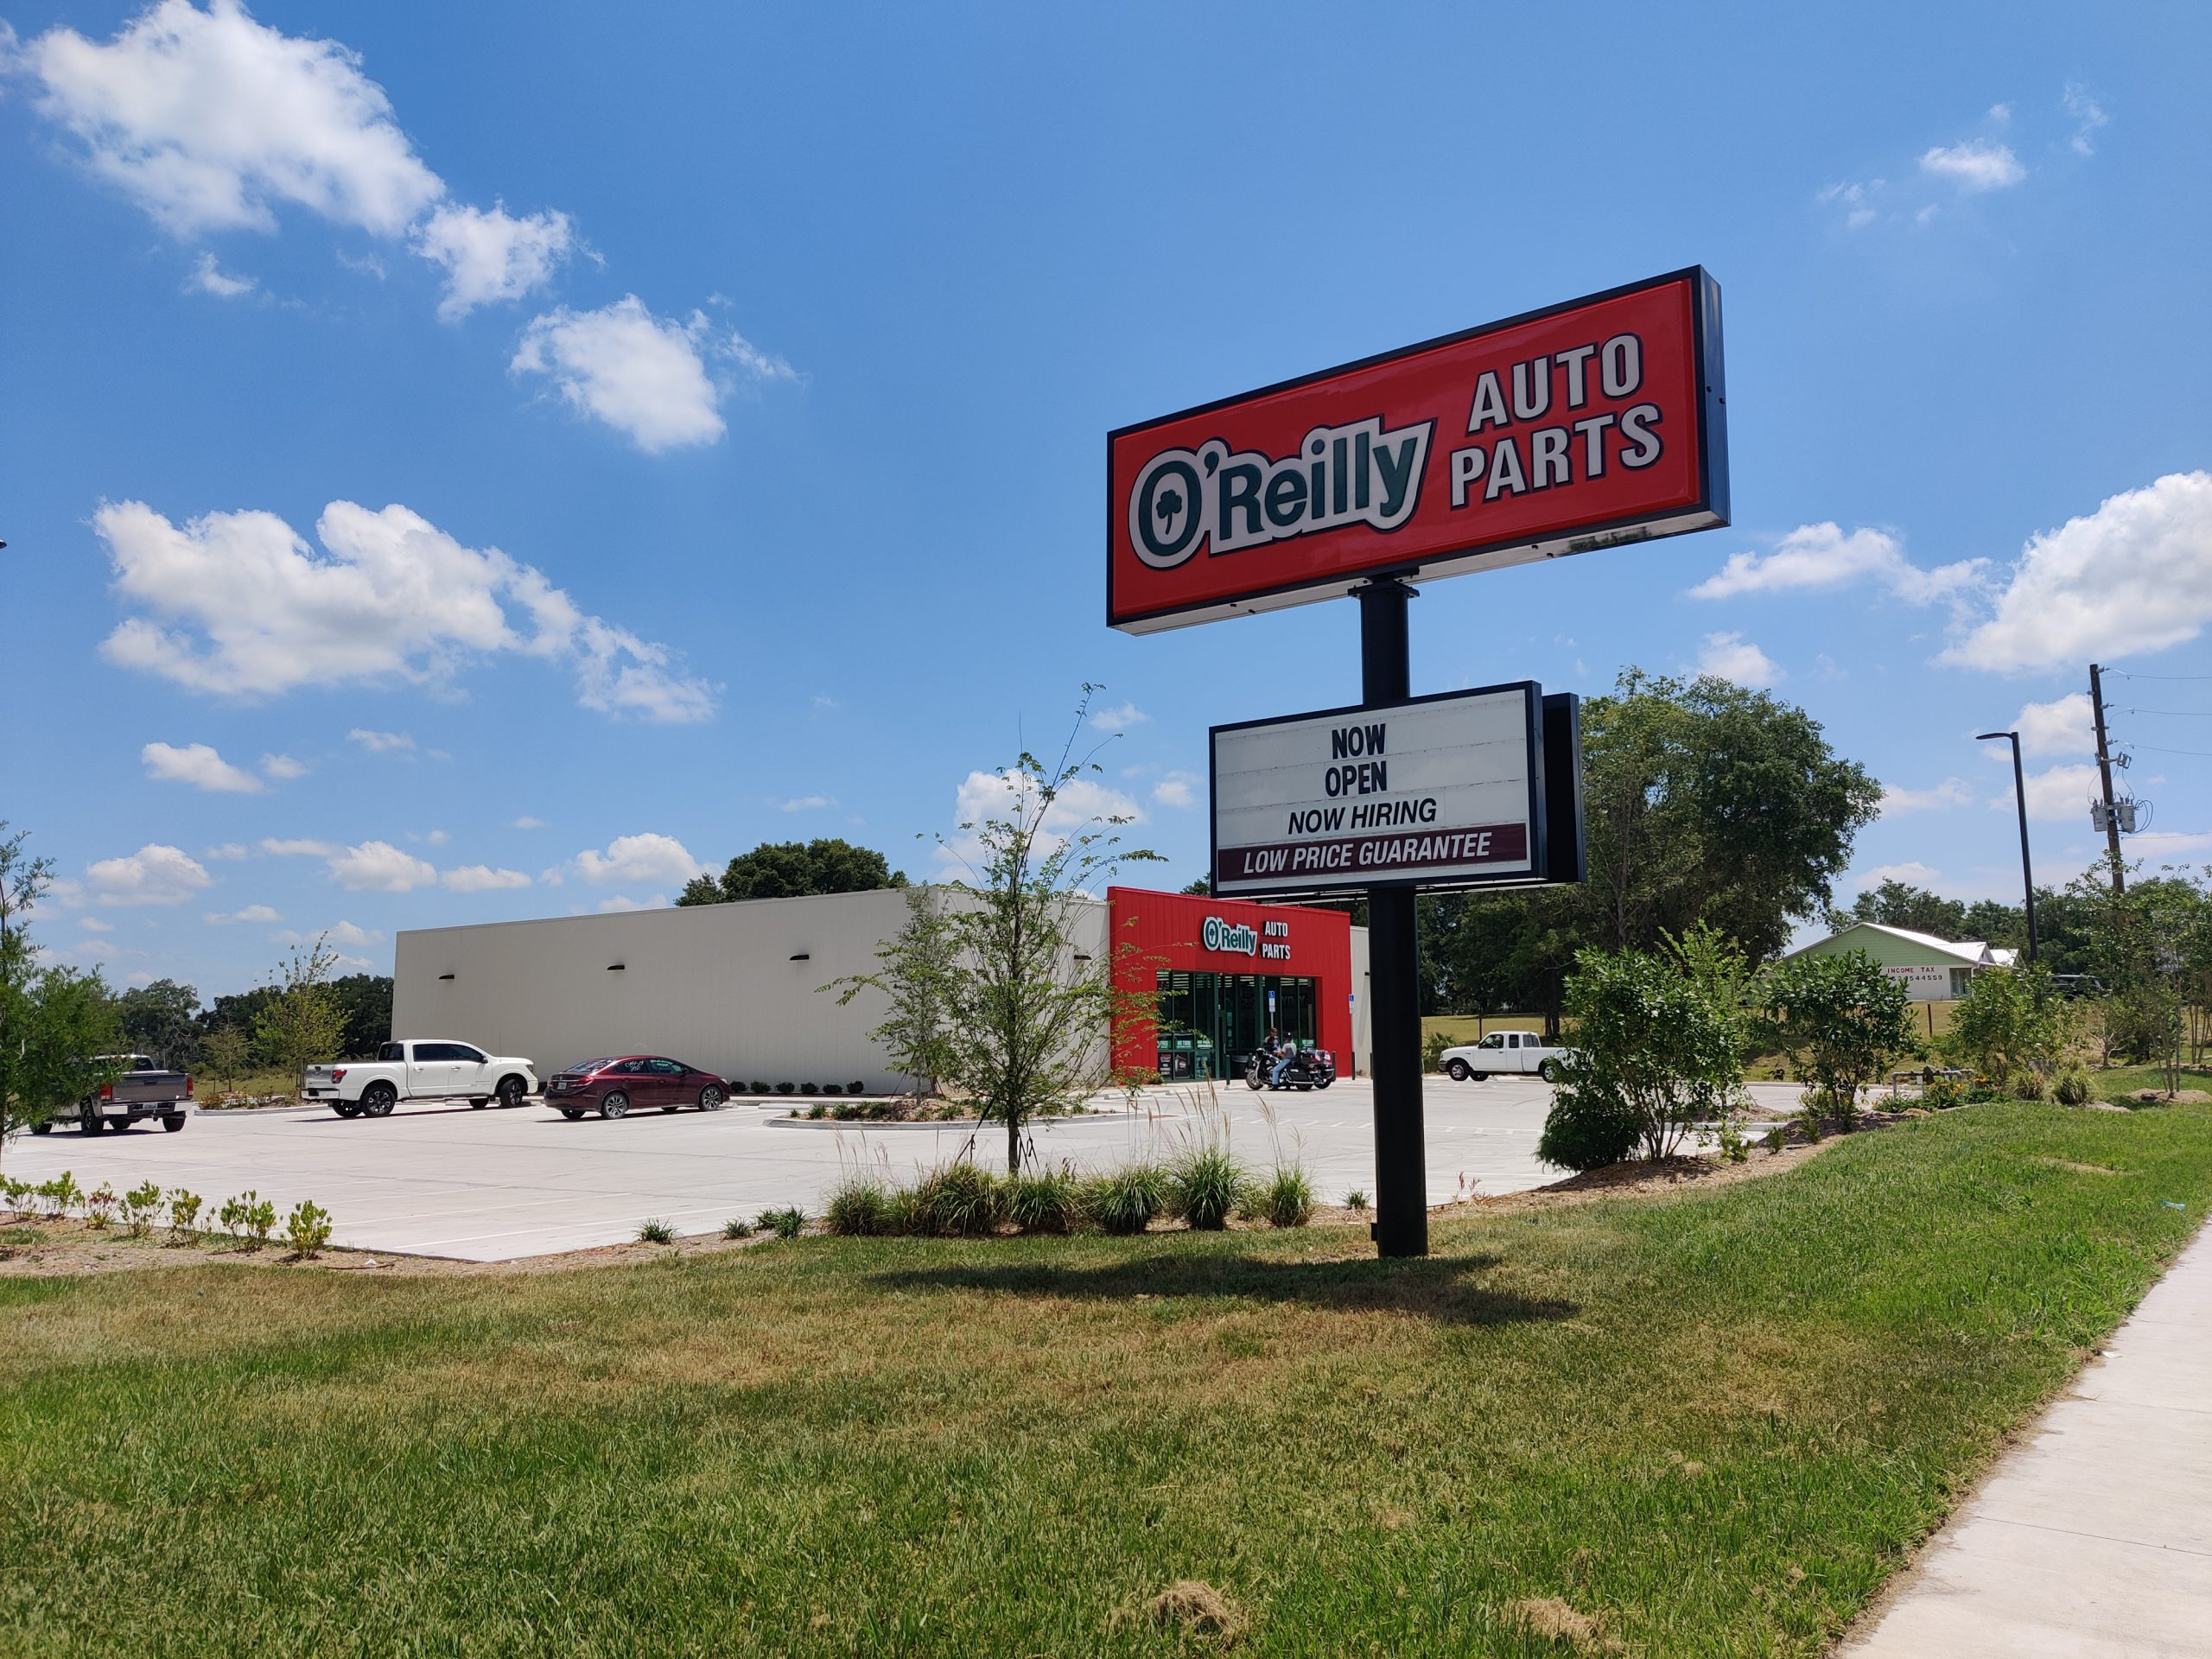 05-26-2021 O'Reilly Auto Parts in Marion Oaks